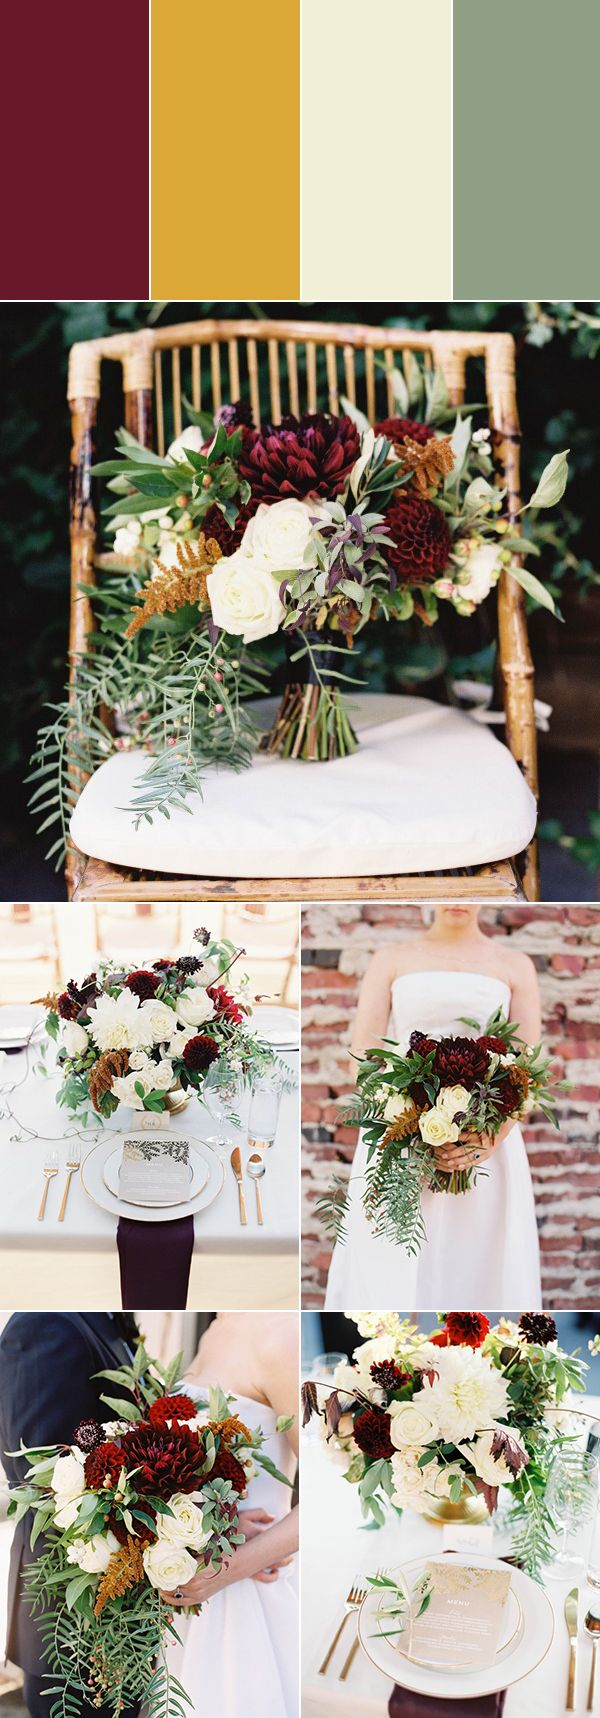 Burgundy + dusty gold + ivory + sage | Images by O'Malley Photographers   #burgundy #burgandycolorpalette #redwedding #fallwedding #colorpalette #weddingplanning #weddingideas #weddingcolors #weddingcolorpalette #weddingdecor #weddingreception #reception #receptiondecor #floraldesign #weddingfloraldesign